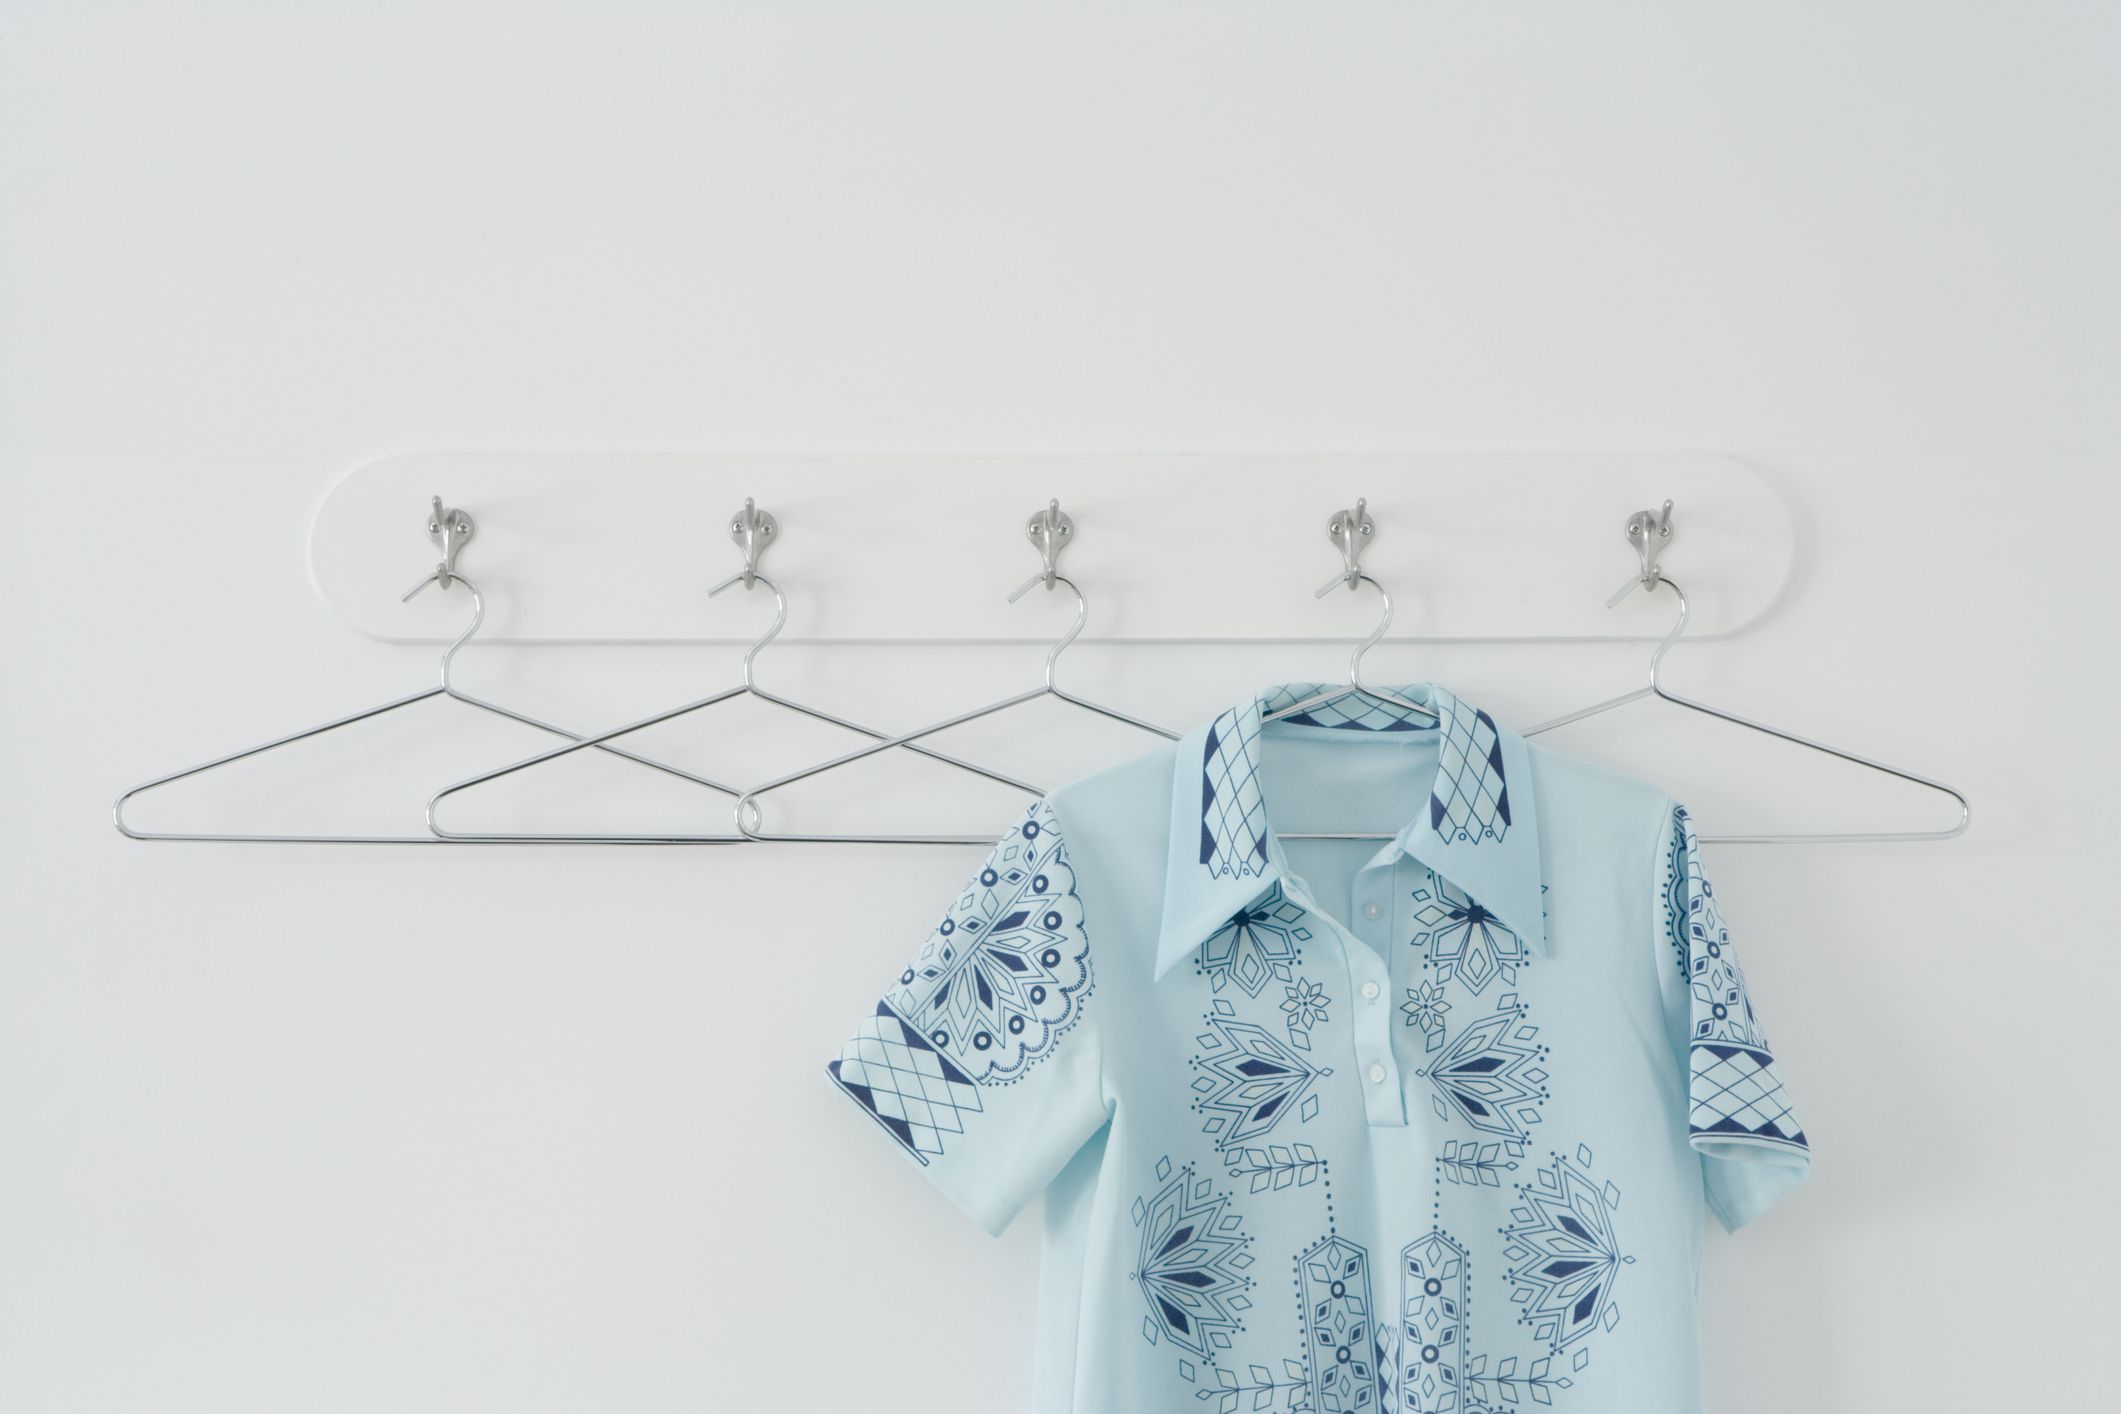 12 new ways to use clothes hangers - Unusual uses for wire coat hangers ...